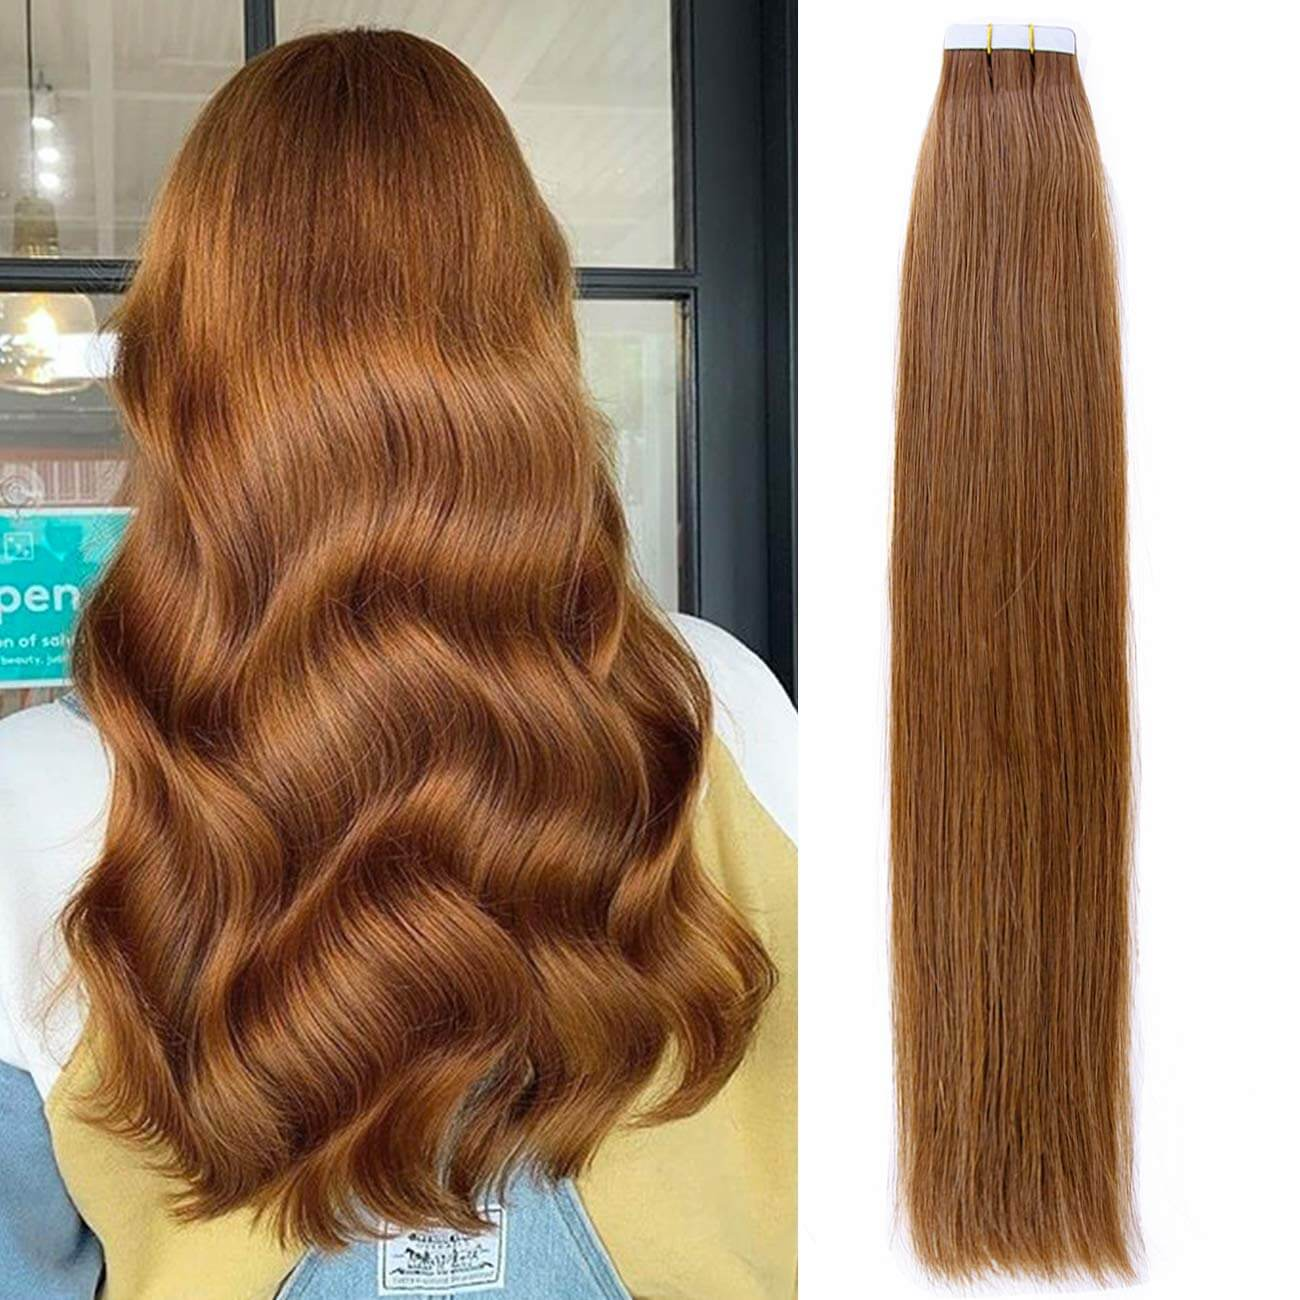 Pre-Tape Authentic Invisibl Remy Seamless Tape in Human Hair Extensions #30 Auburn Blonde